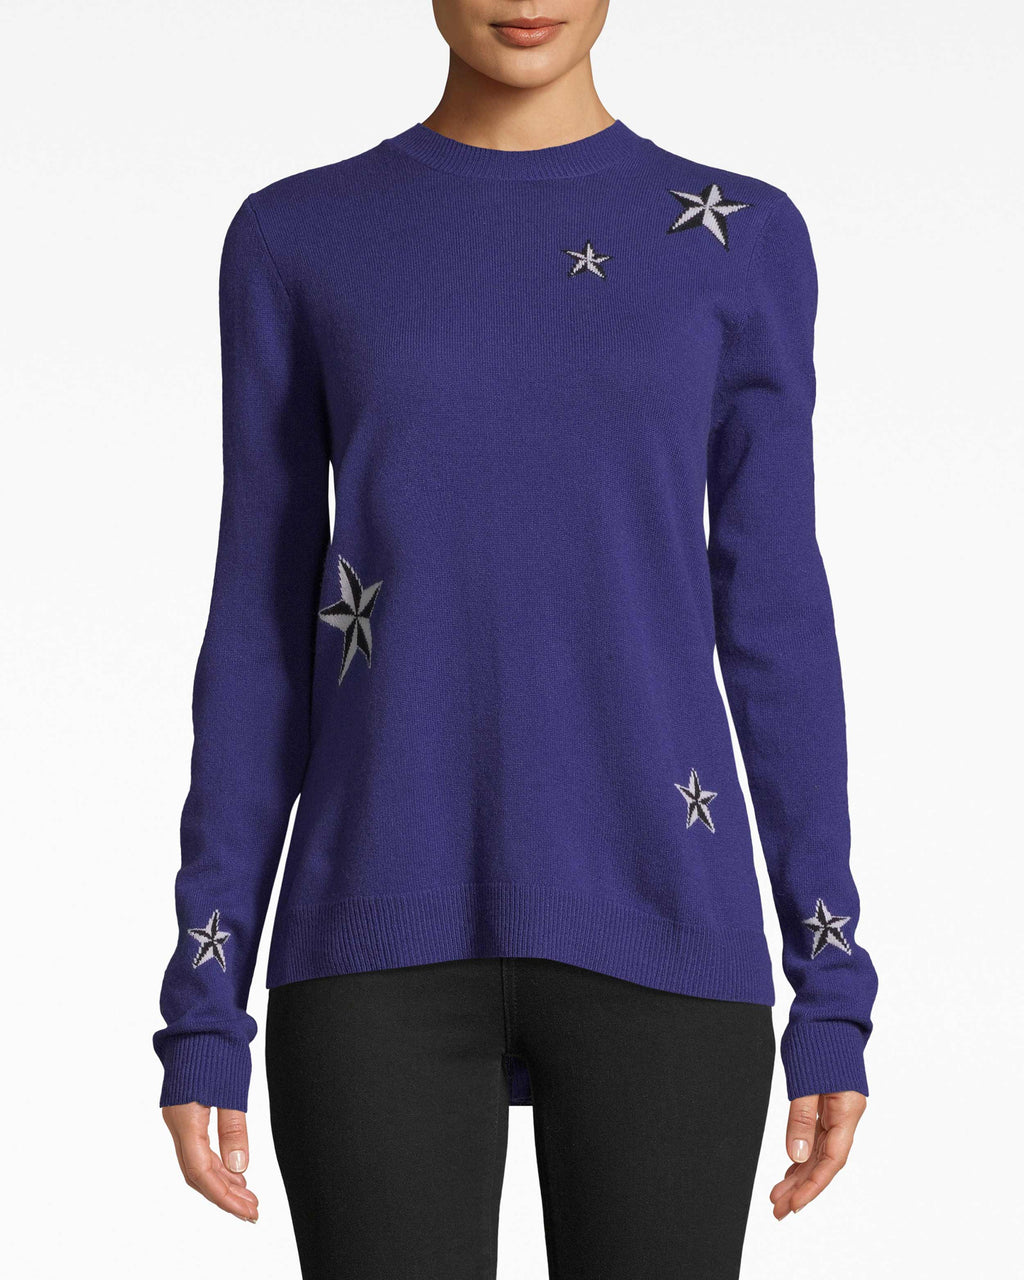 BH10494 - STAR CASHMERE CREW NECK SWEATER - tops - knitwear - Fashion galaxy. The high-rounded neckline structures this star-studded cashmere sweater. Layer with a leather jacket or let it shine solo.